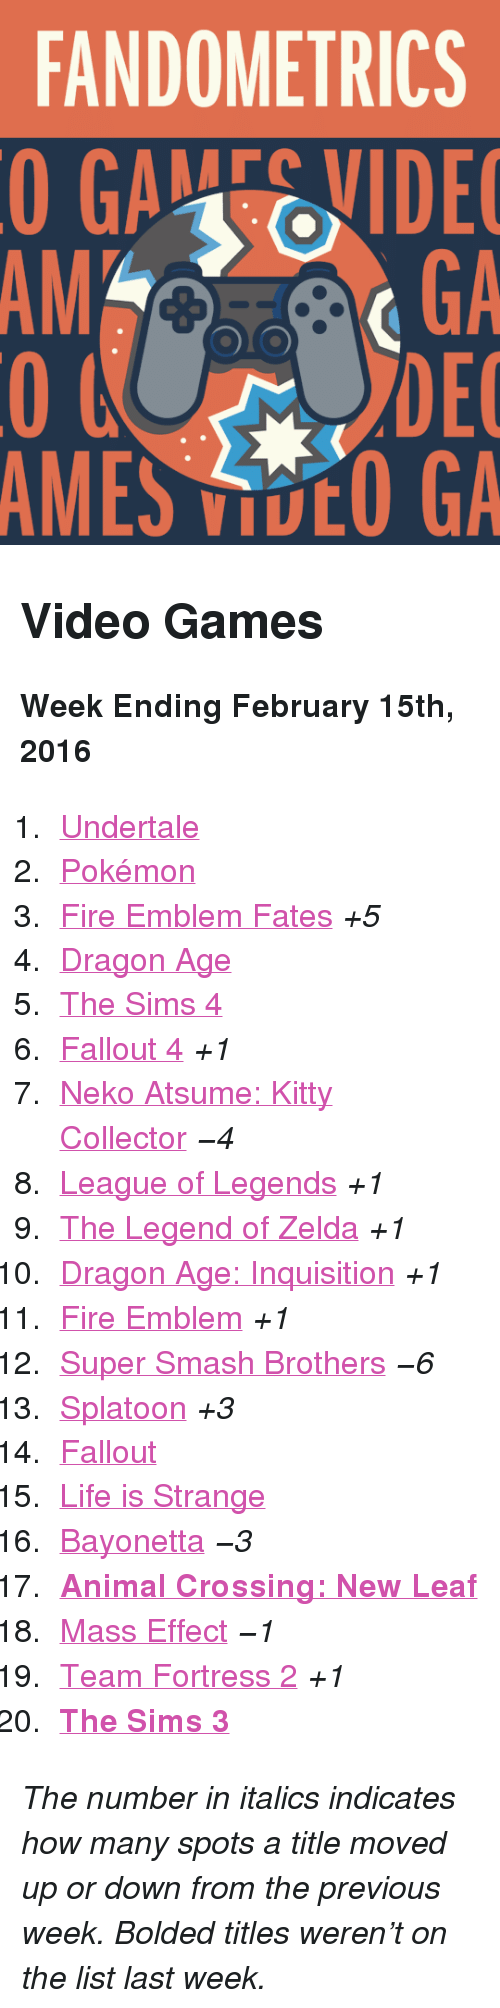 "February 15Th: FANDOMETRICS  GAEVIDE  GA  DEC  AMES VOO GA  AM <h2>Video Games</h2><p><b>Week Ending February 15th, 2016</b></p><ol><li><a href=""http://www.tumblr.com/search/undertale"">Undertale</a></li>  <li><a href=""http://www.tumblr.com/search/pokemon"">Pokémon</a></li>  <li><a href=""http://www.tumblr.com/search/fire%20emblem%20fates"">Fire Emblem Fates</a> <i>+5</i><br/></li>  <li><a href=""http://www.tumblr.com/search/dragon%20age"">Dragon Age</a></li>  <li><a href=""http://www.tumblr.com/search/sims%204"">The Sims 4</a></li>  <li><a href=""http://www.tumblr.com/search/fallout%204"">Fallout 4</a> <i>+1</i></li>  <li><a href=""http://www.tumblr.com/search/neko%20atsume"">Neko Atsume: Kitty Collector</a> <i>−4</i></li>  <li><a href=""http://www.tumblr.com/search/league%20of%20legends"">League of Legends</a> <i>+1</i></li>  <li><a href=""http://www.tumblr.com/search/legend%20of%20zelda"">The Legend of Zelda</a> <i>+1</i></li>  <li><a href=""http://www.tumblr.com/search/dragon%20age%20inquisition"">Dragon Age: Inquisition</a> <i>+1</i></li>  <li><a href=""http://www.tumblr.com/search/fire%20emblem"">Fire Emblem</a> <i>+1</i></li>  <li><a href=""http://www.tumblr.com/search/super%20smash%20bros"">Super Smash Brothers</a> <i>−6</i></li>  <li><a href=""http://www.tumblr.com/search/splatoon"">Splatoon</a> <i>+3</i></li>  <li><a href=""http://www.tumblr.com/search/fallout"">Fallout</a> </li>  <li><a href=""http://www.tumblr.com/search/life%20is%20strange"">Life is Strange</a></li>  <li><a href=""http://www.tumblr.com/search/bayonetta"">Bayonetta</a> <i>−3</i></li>  <li><a href=""http://www.tumblr.com/search/acnl""><b>Animal Crossing: New Leaf</b></a></li>  <li><a href=""http://www.tumblr.com/search/mass%20effect"">Mass Effect</a> <i>−1</i></li>  <li><a href=""http://www.tumblr.com/search/tf2"">Team Fortress 2</a> <i>+1</i></li>  <li><a href=""http://www.tumblr.com/search/sims%203""><b>The Sims 3</b></a></li></ol><p><i>The number in italics indicates how many spots a title moved up or down from the previous week. Bolded titles weren't on the list last week.</i></p>"